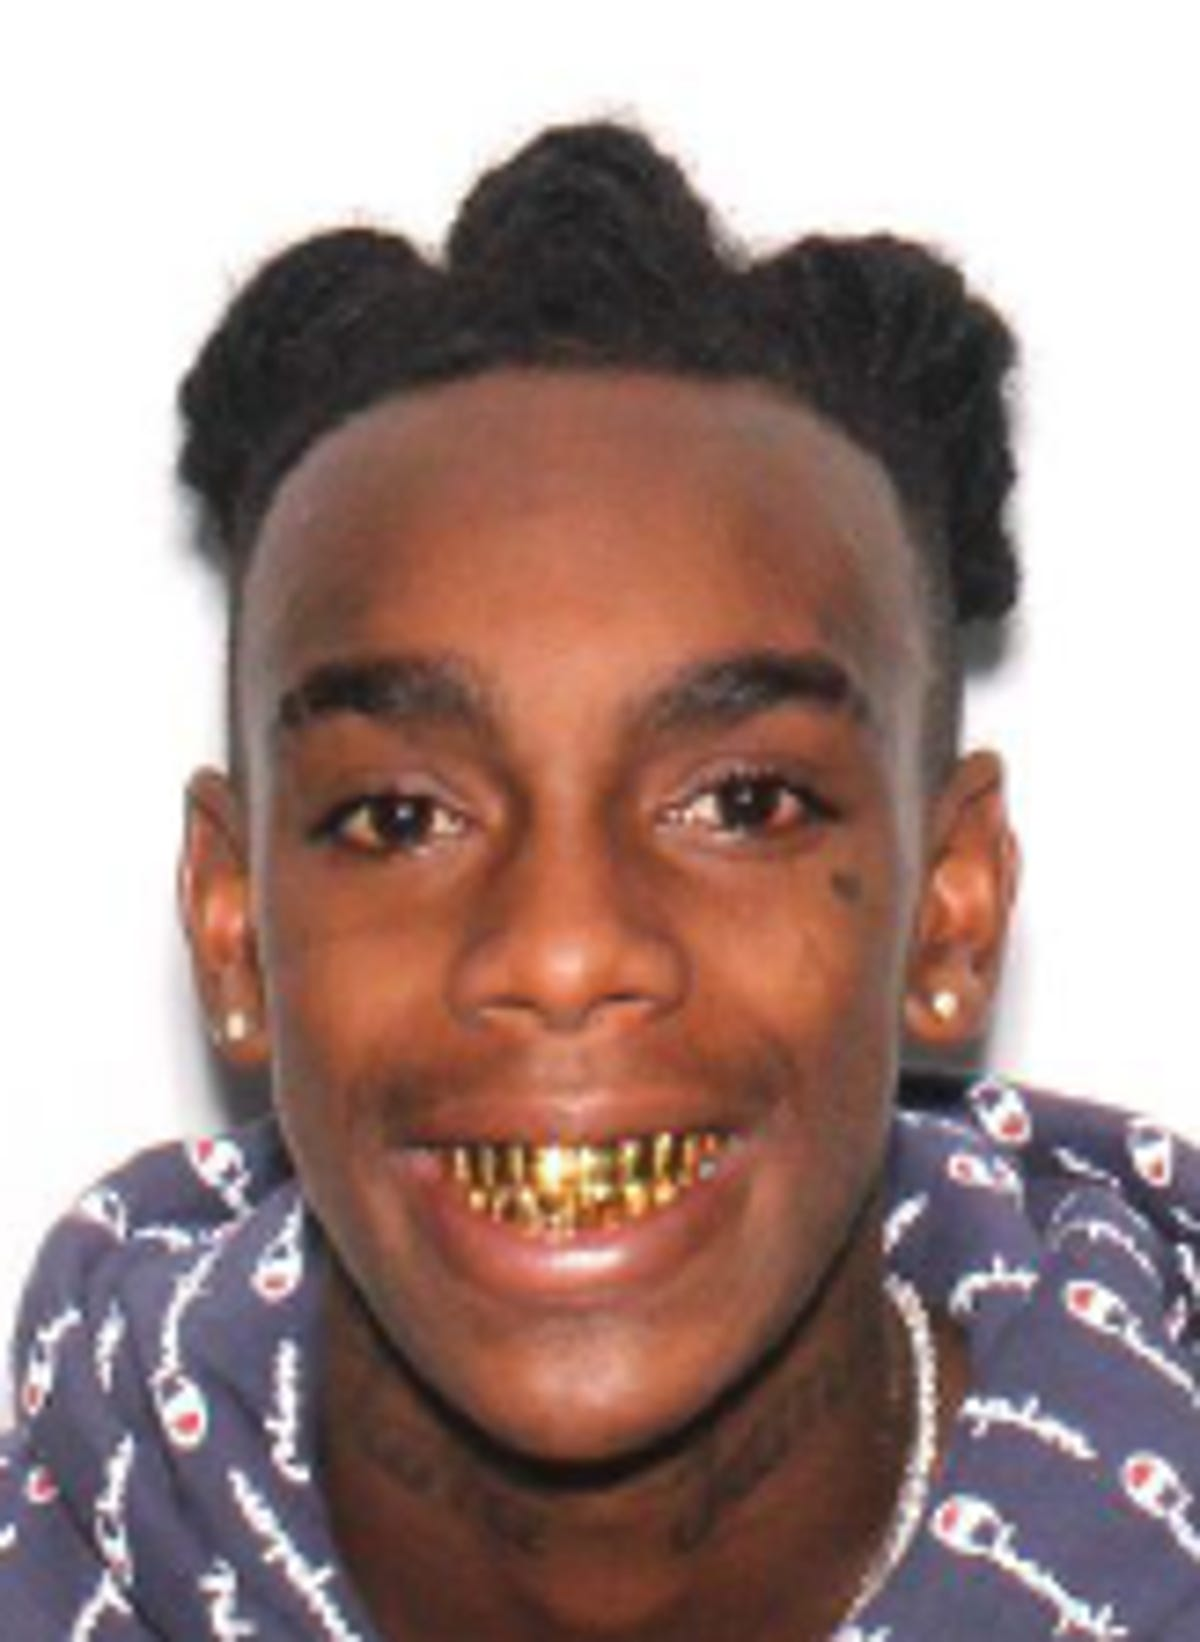 Who is Florida rapper YNW Melly, accused of murdering